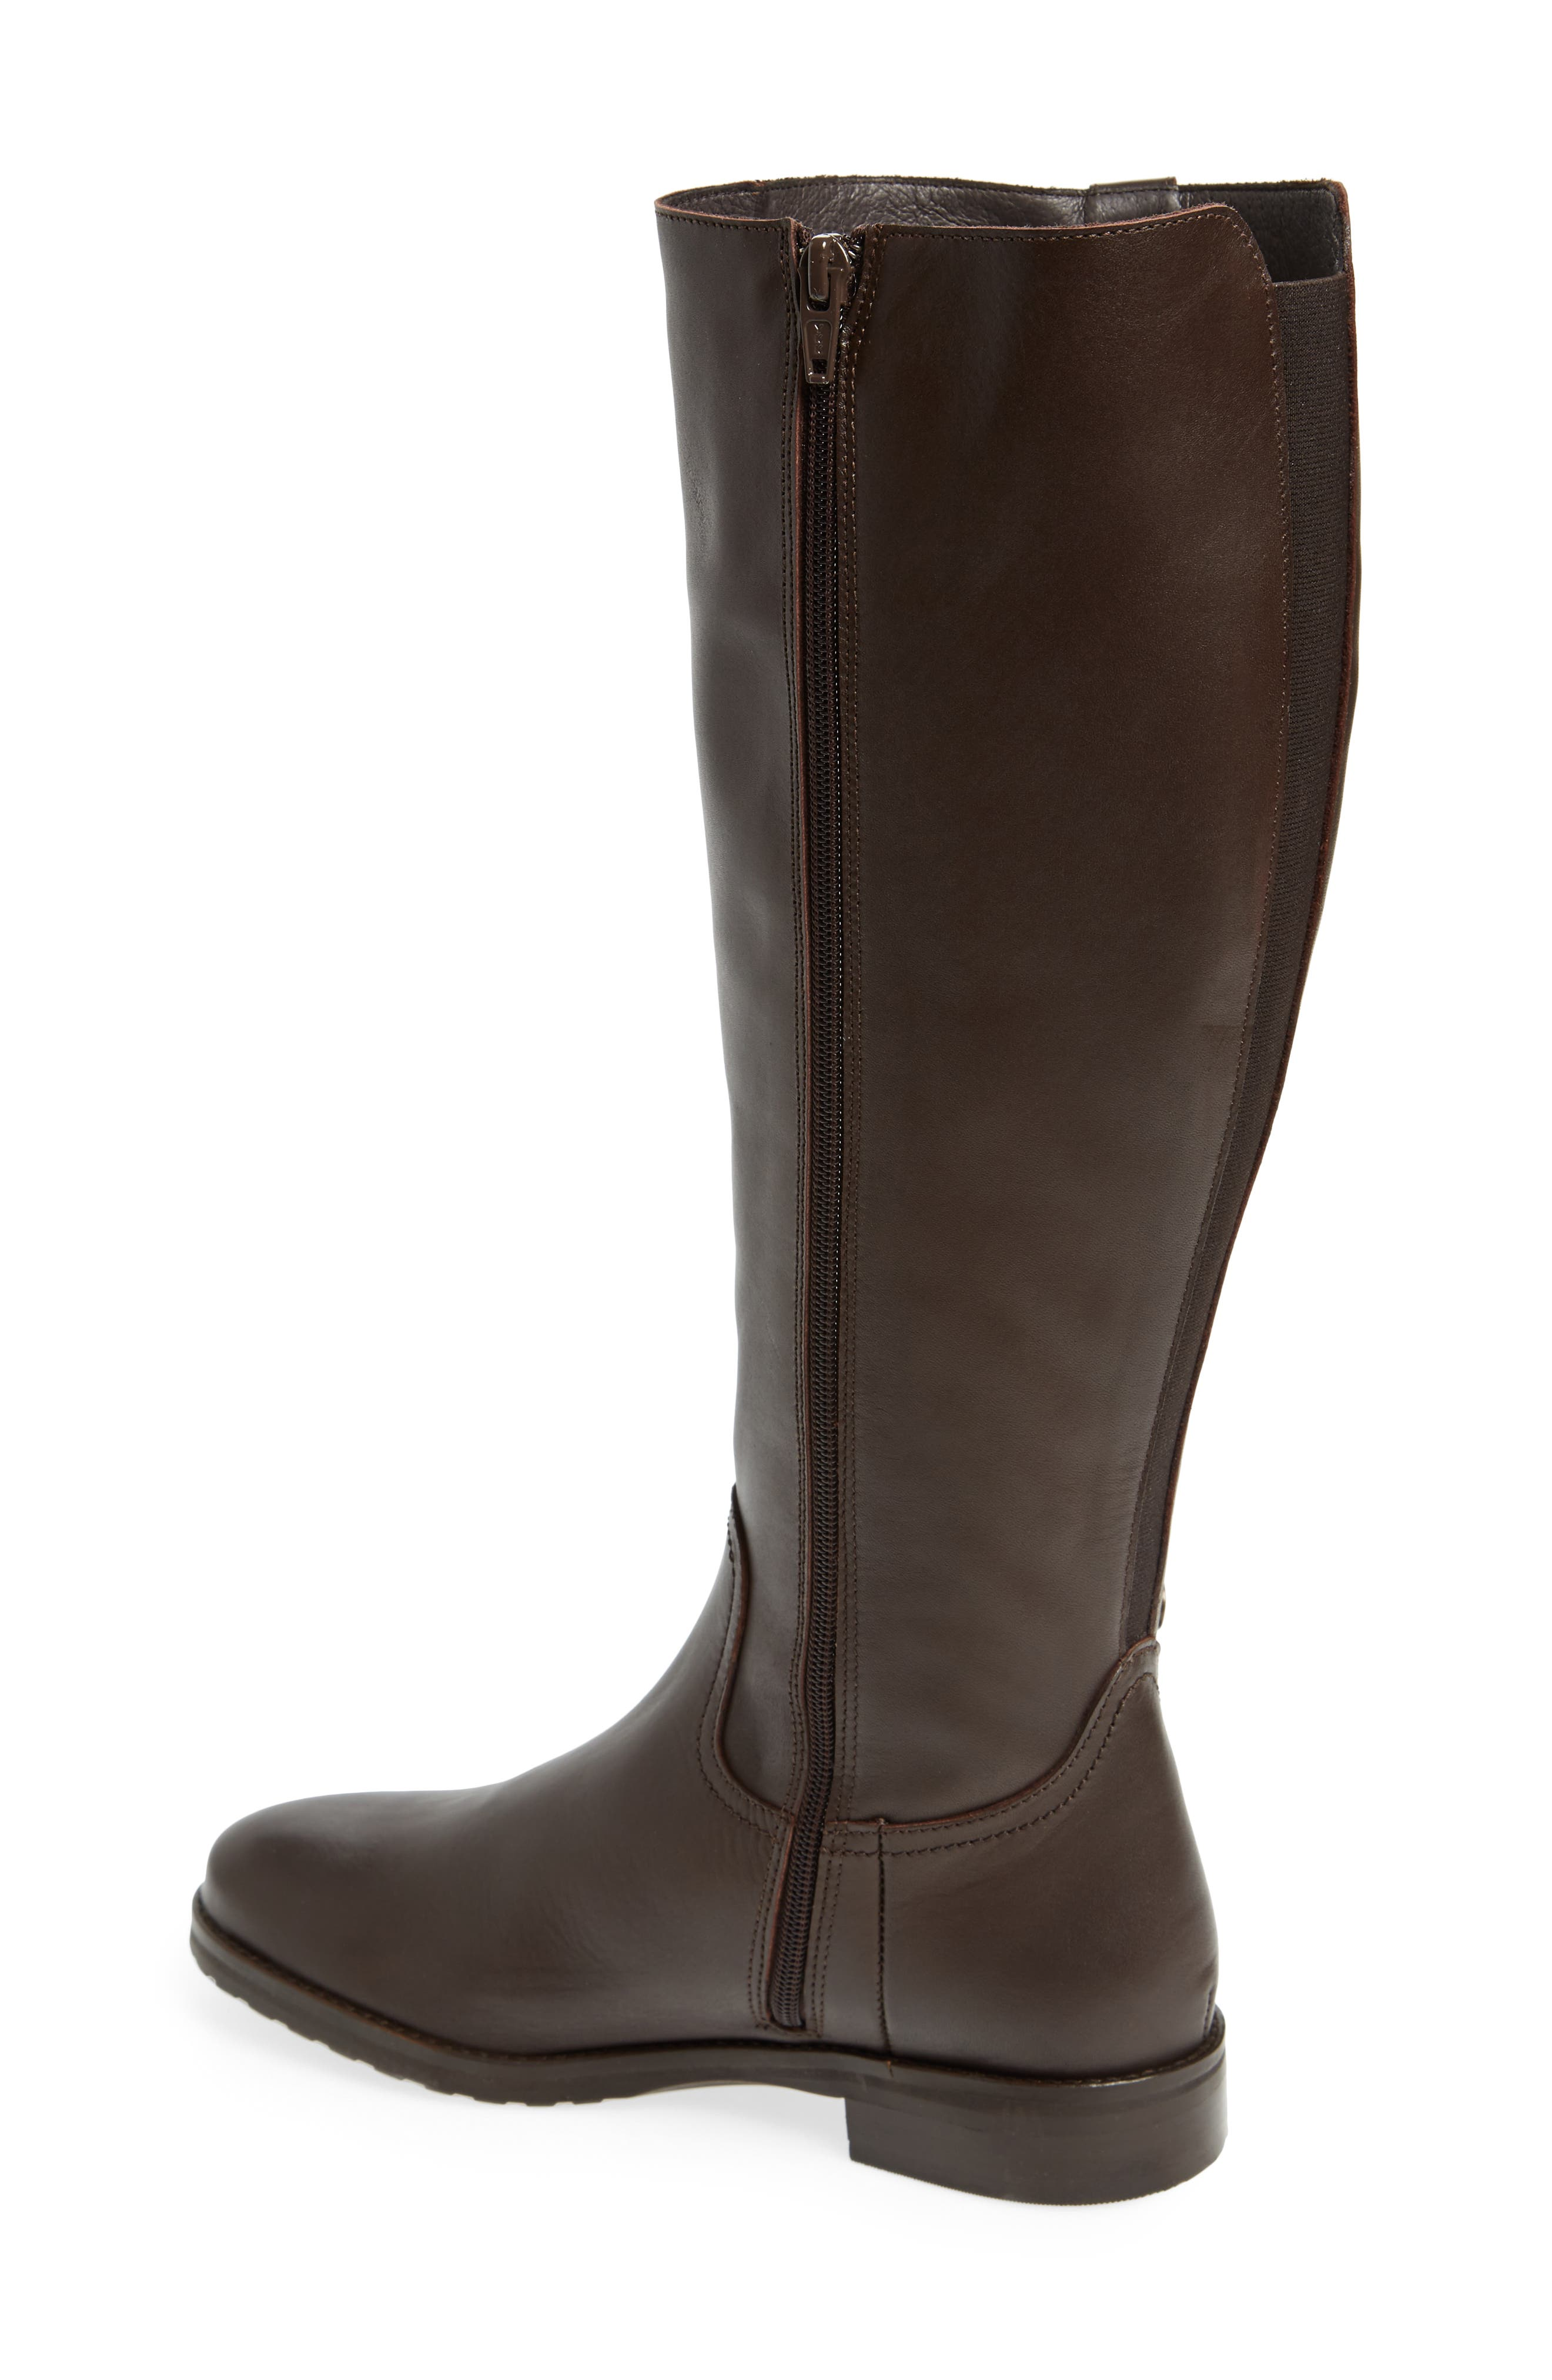 Anson Waterproof Boot,                             Alternate thumbnail 2, color,                             Brown Leather